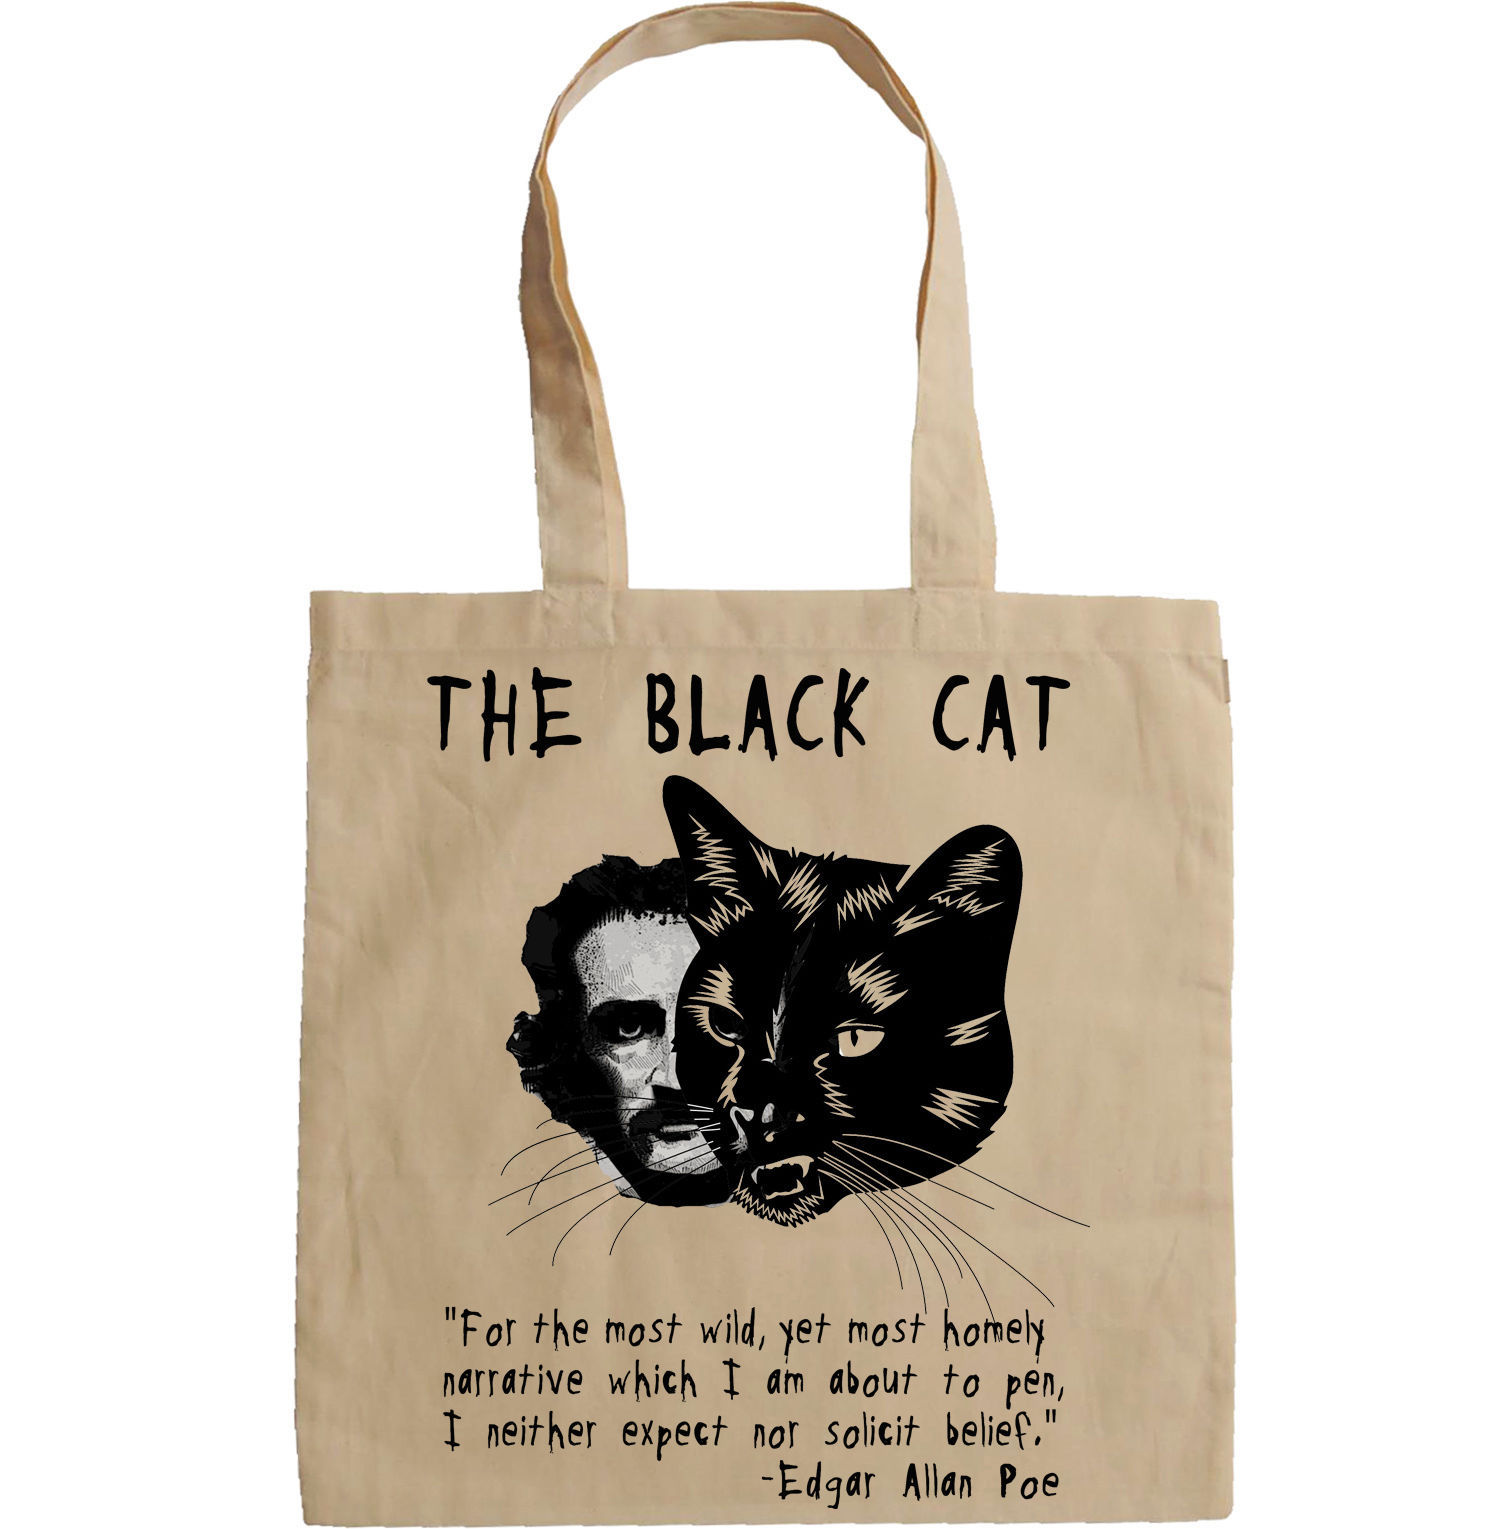 EDGAR ALLAN POE THE BLACK CAT - NEW AMAZING GRAPHIC HAND BAG/TOTE BAG